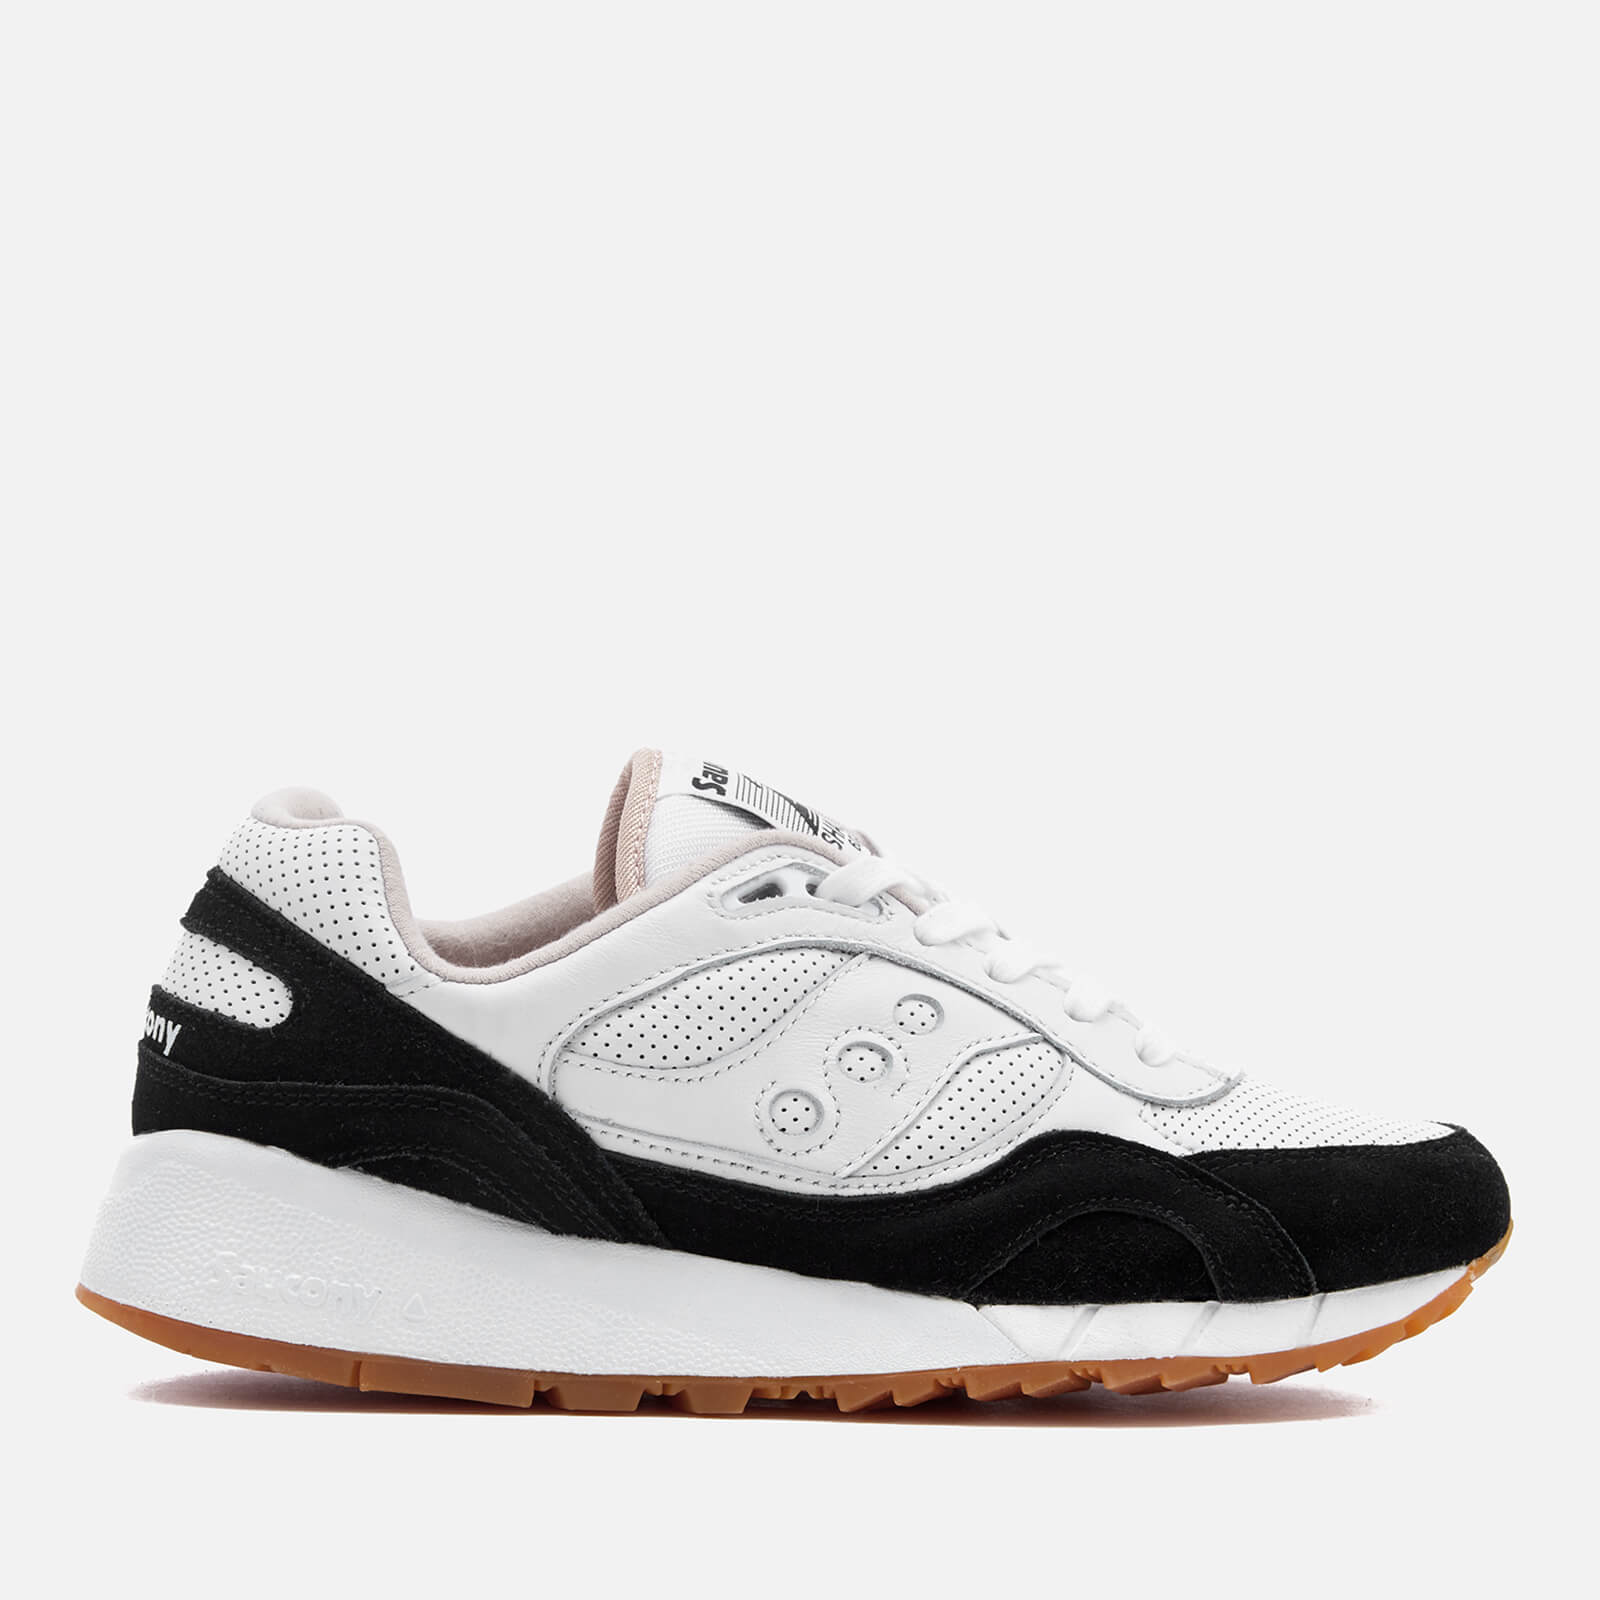 ab8a7d04929e Saucony Men s Premium Shadow 6000 HT Perf Trainers - White Black - Free UK  Delivery over £50